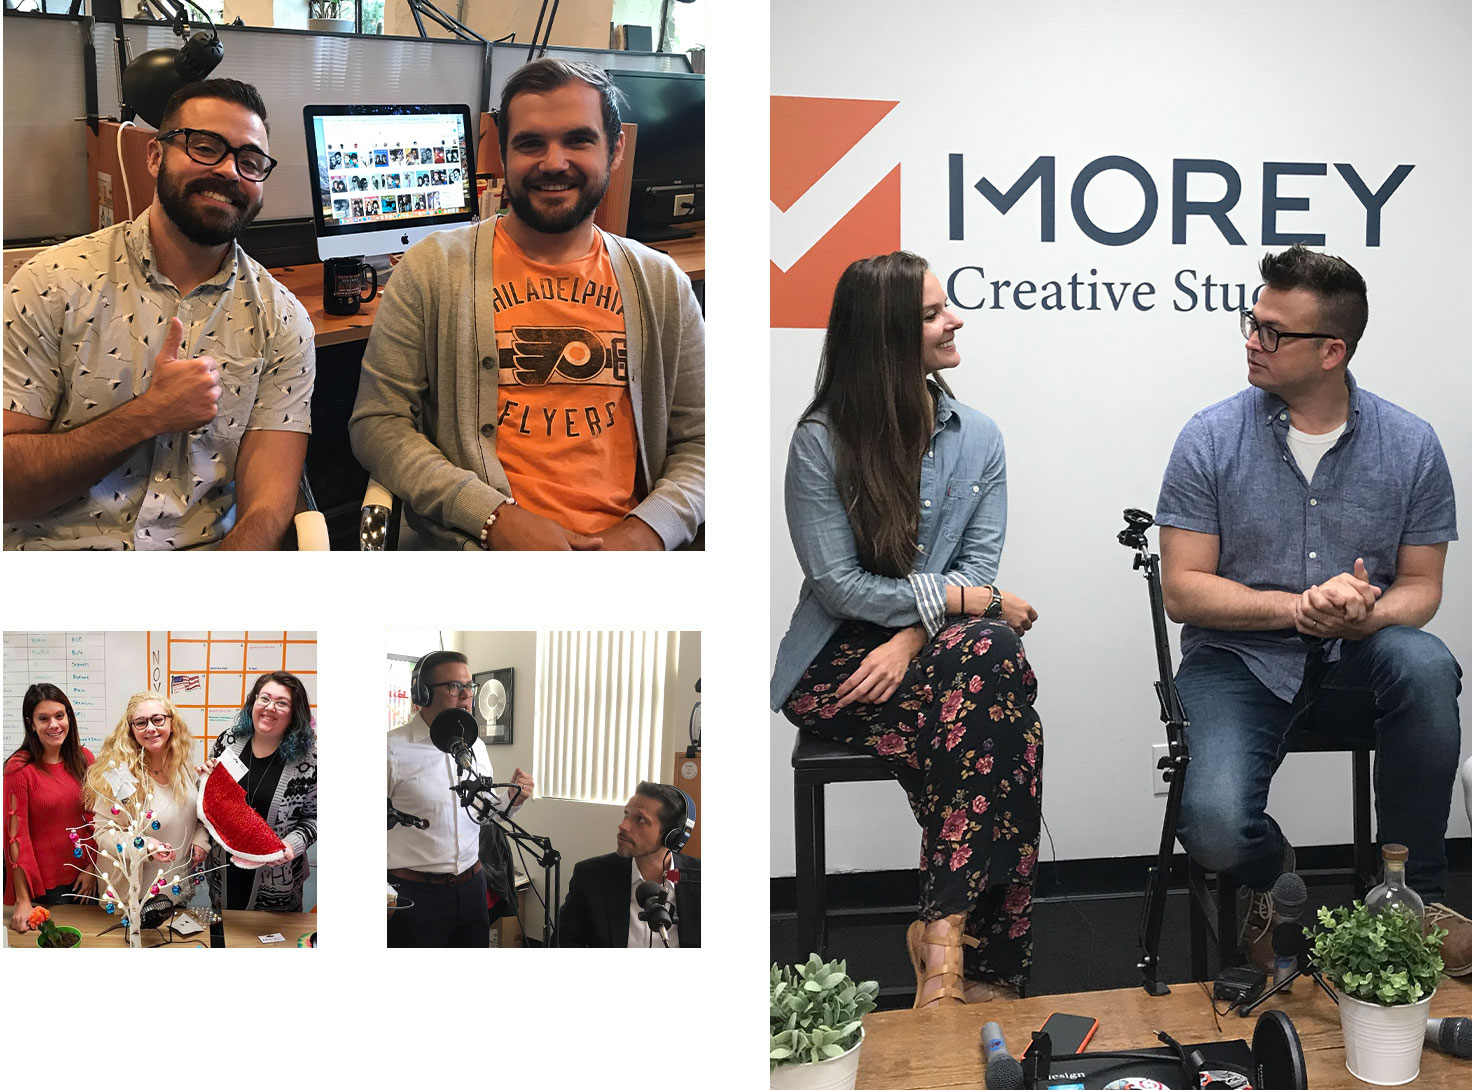 Morey Creative Team Members